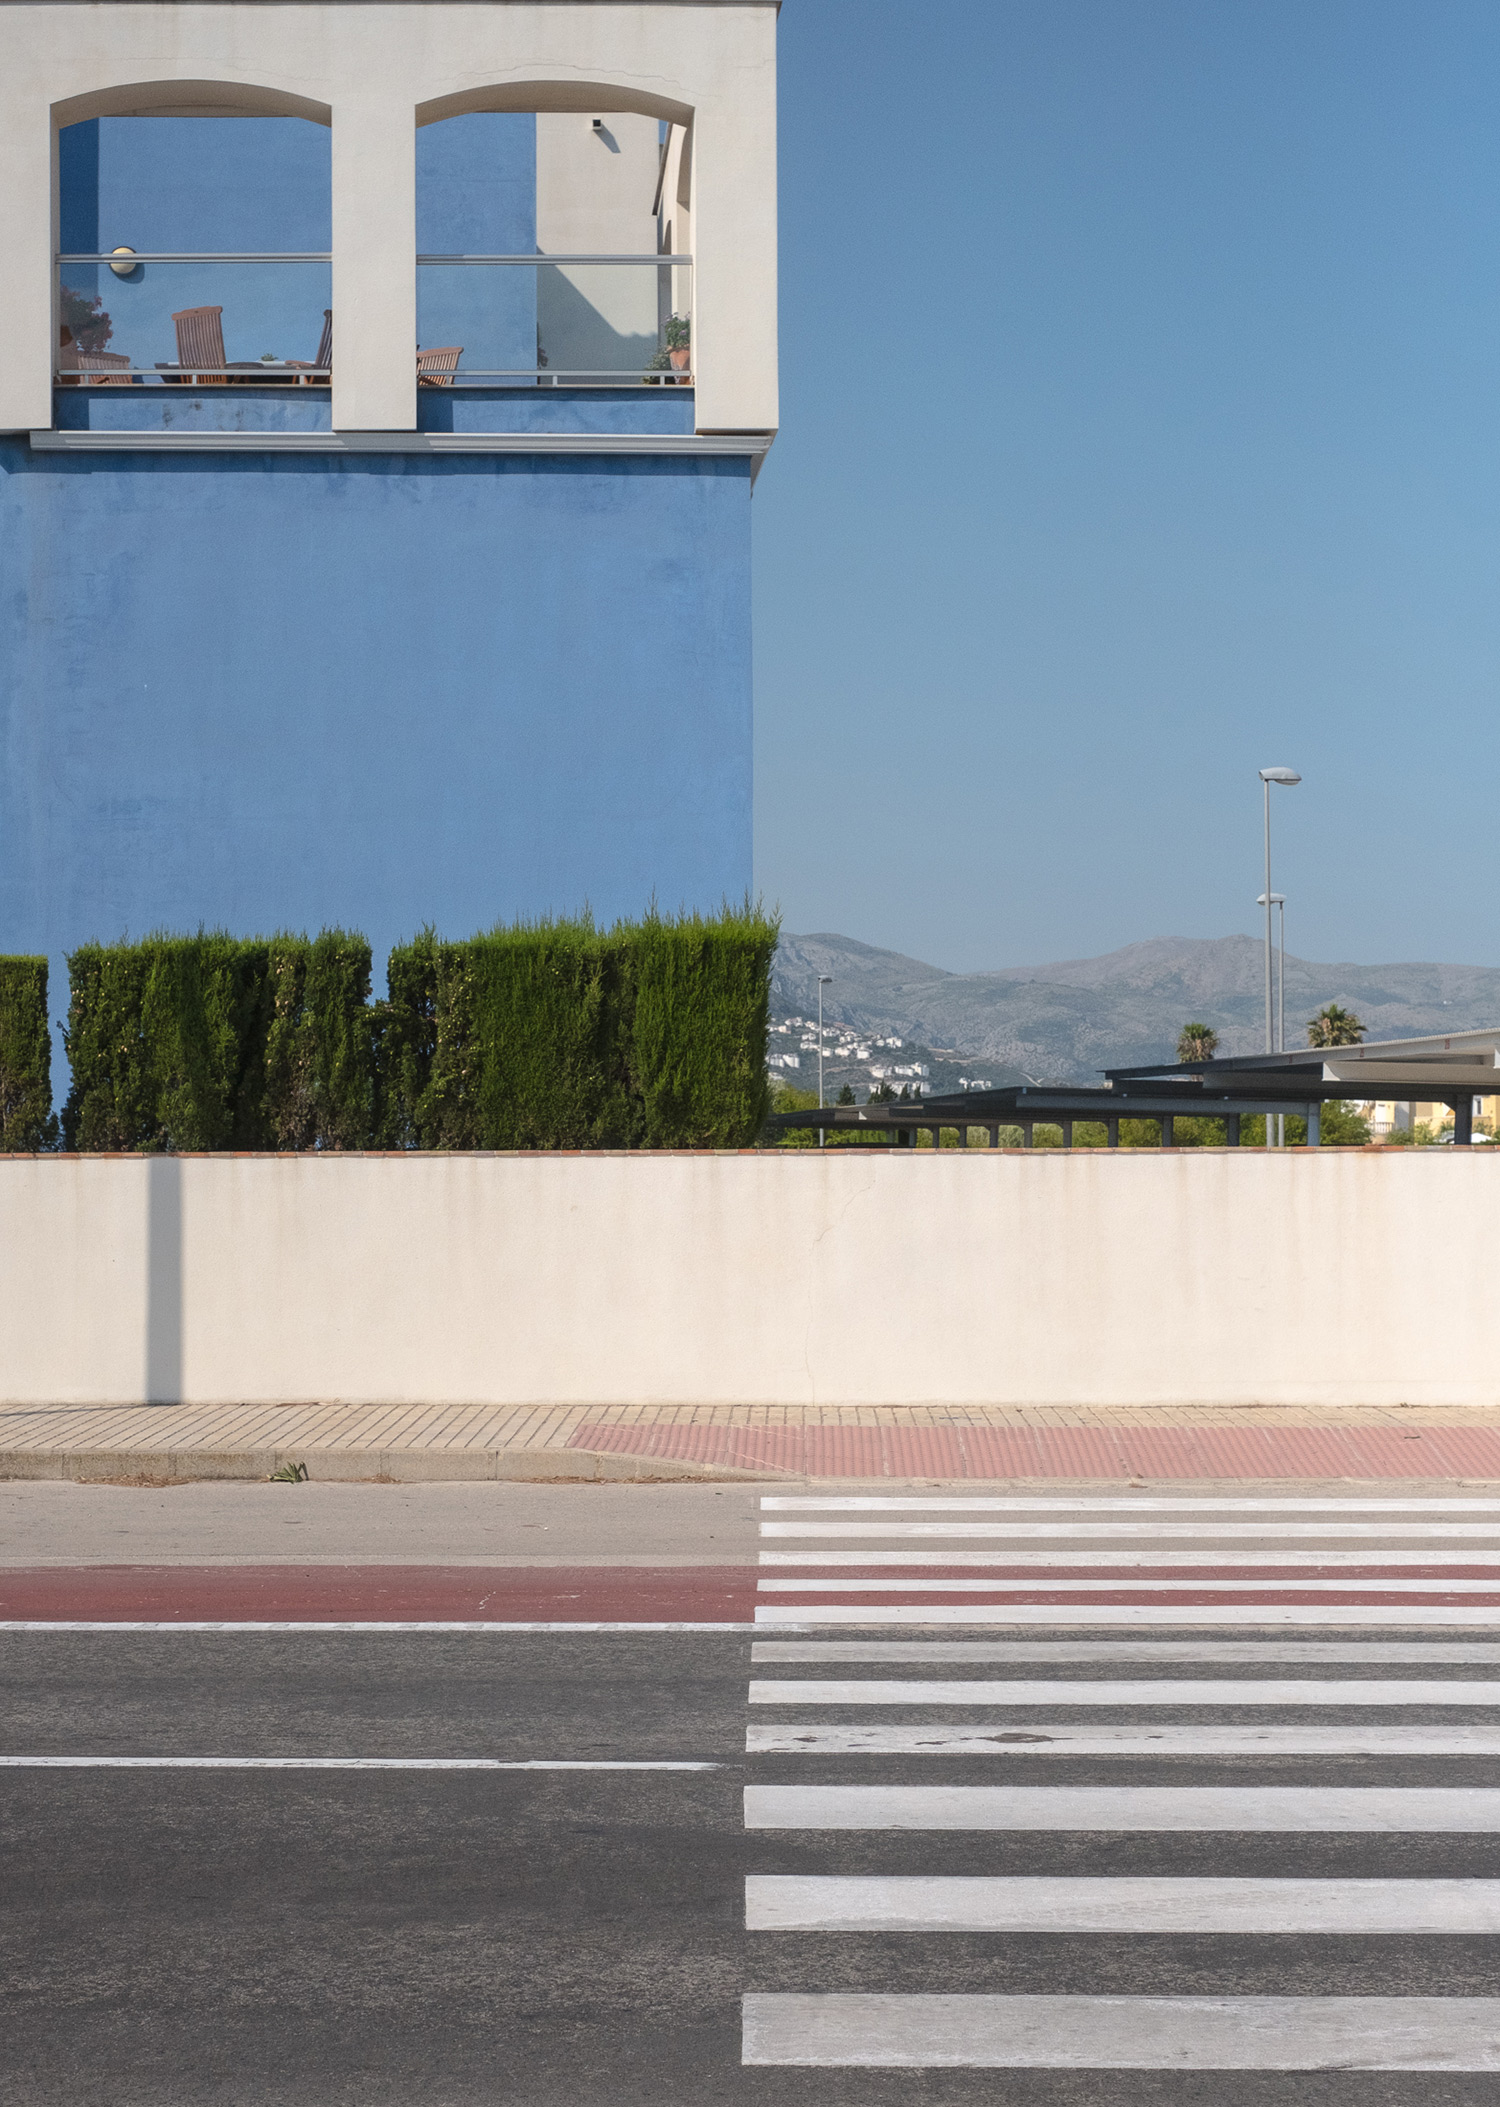 The Coincidence Project: Carefully Timed Photos by Denis Cherim Make You Look Twice